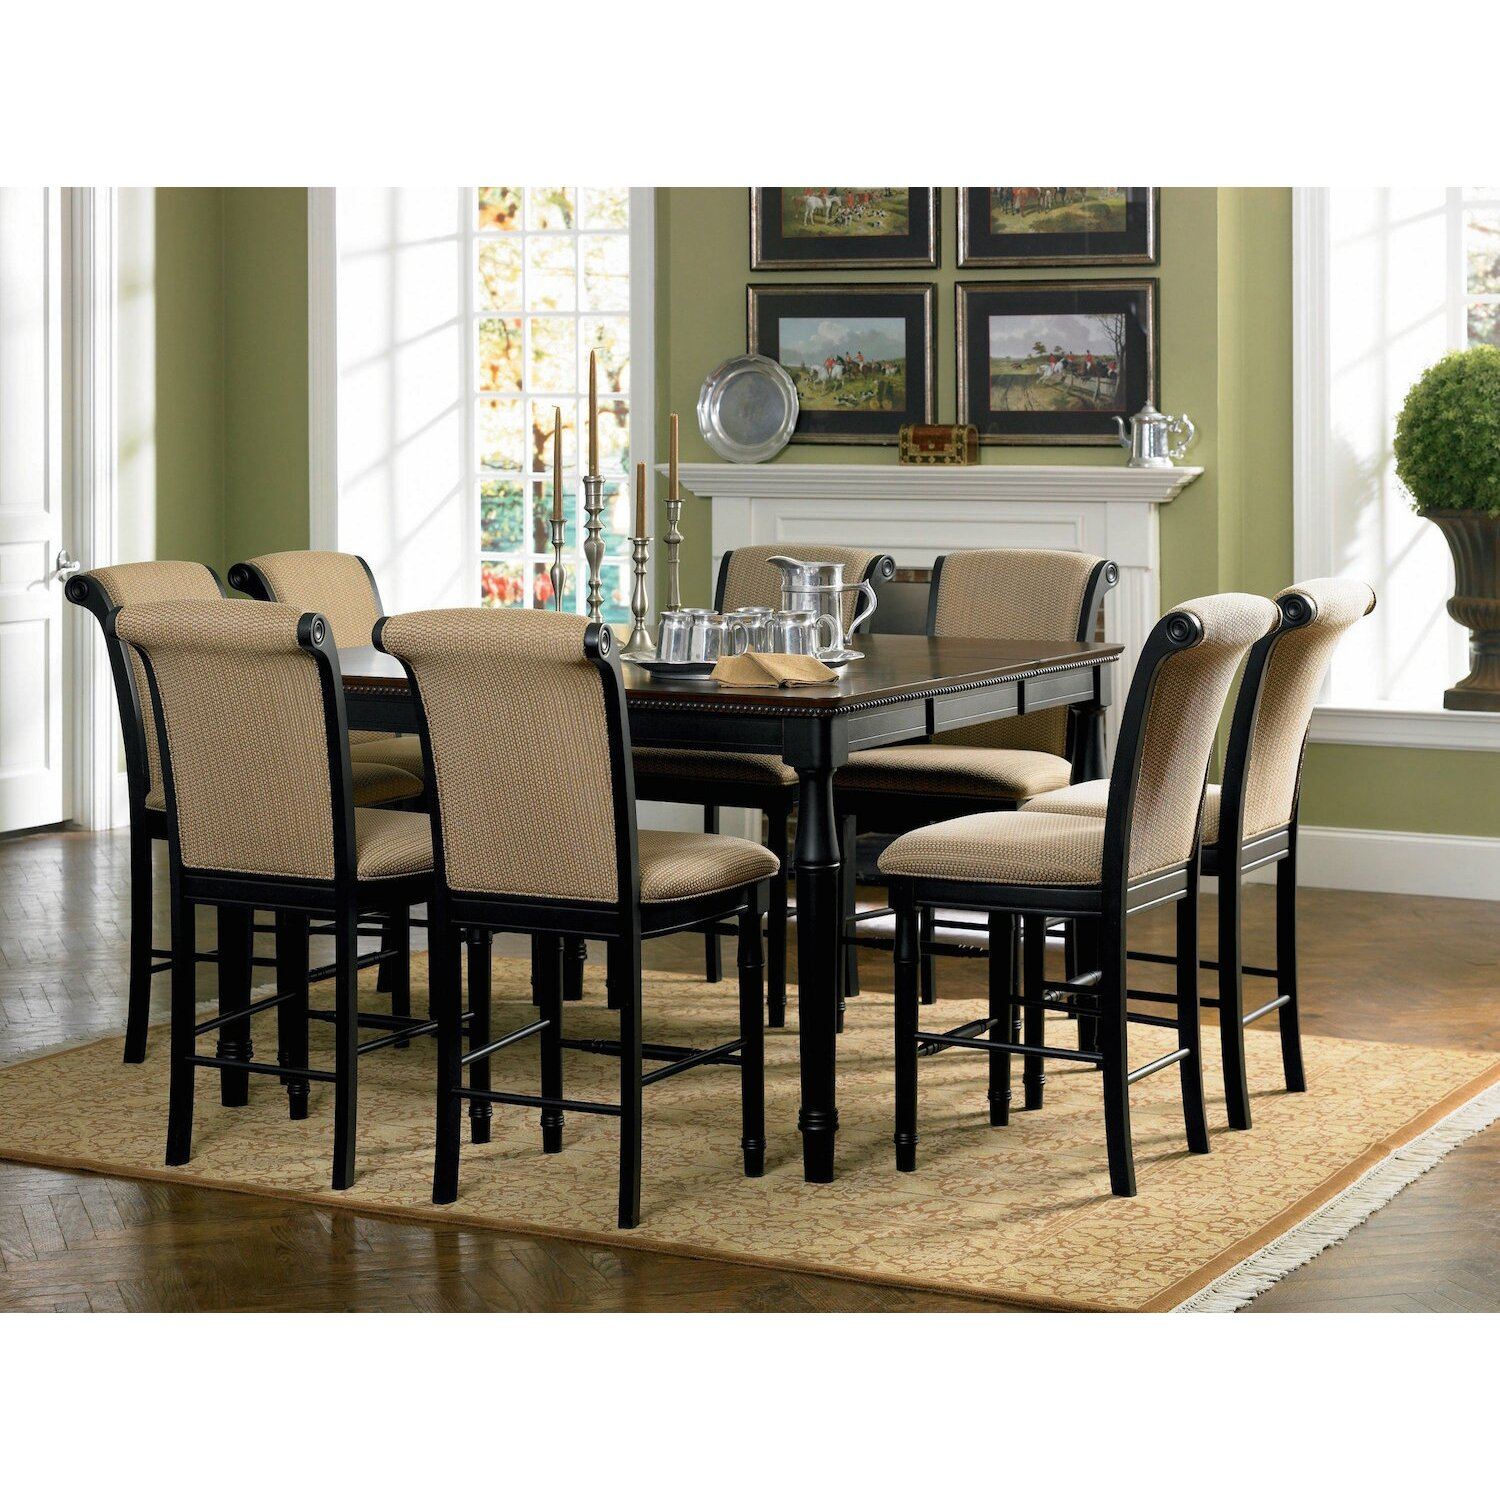 Design#: Average Dining Room Table Height – Average dining room ...